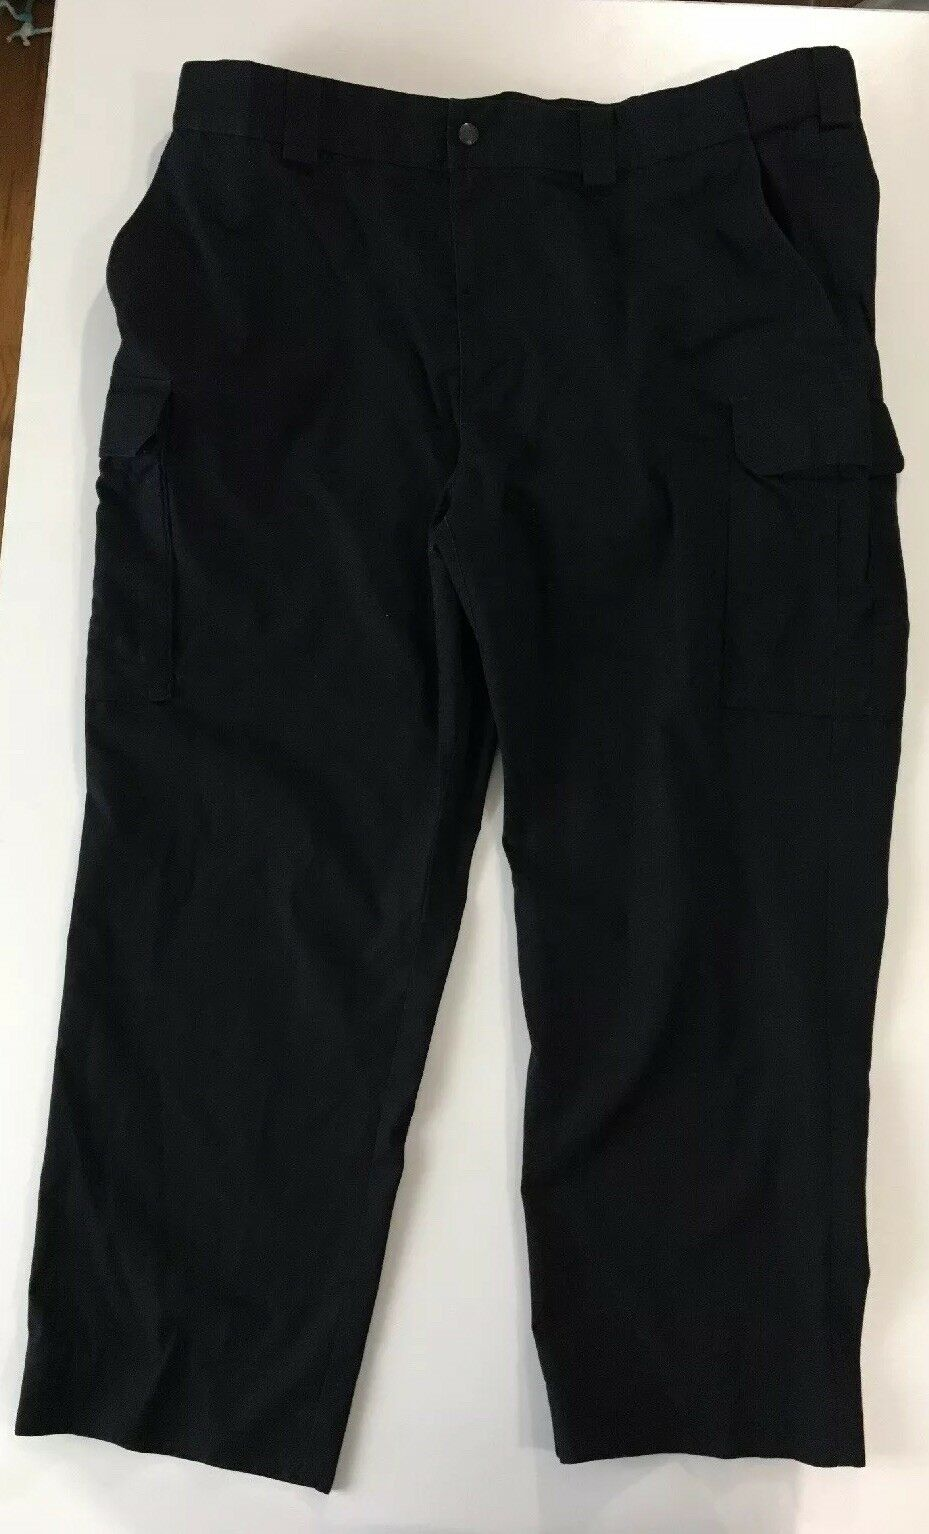 5.11 Tactical Series Mens Pants Size 44- Dark Navy- Preowned